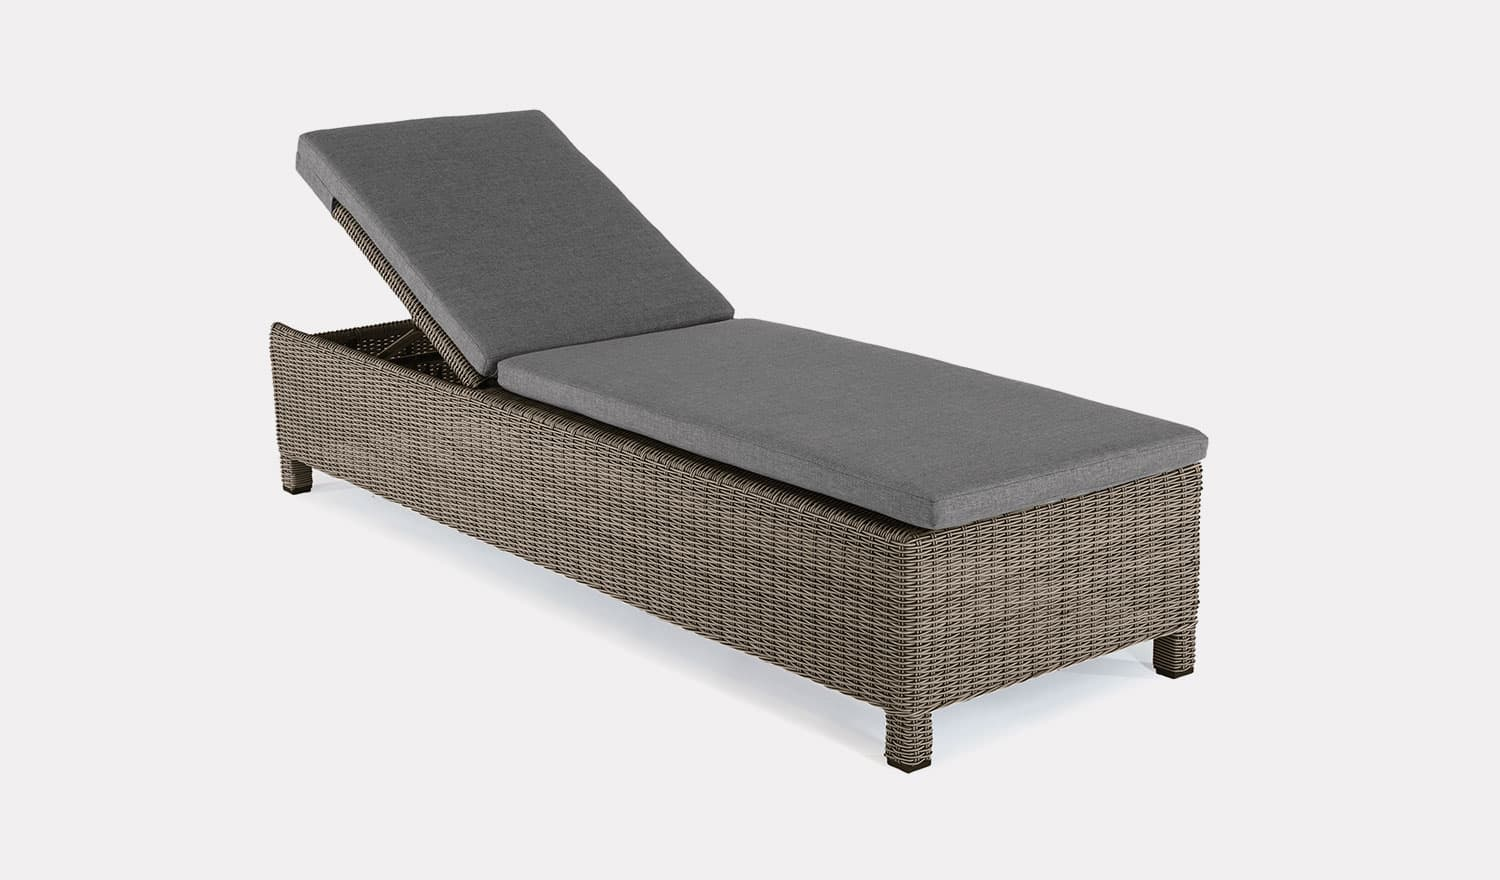 Garden Loungers Luxury Outdoor Chairs Kettler Official Site